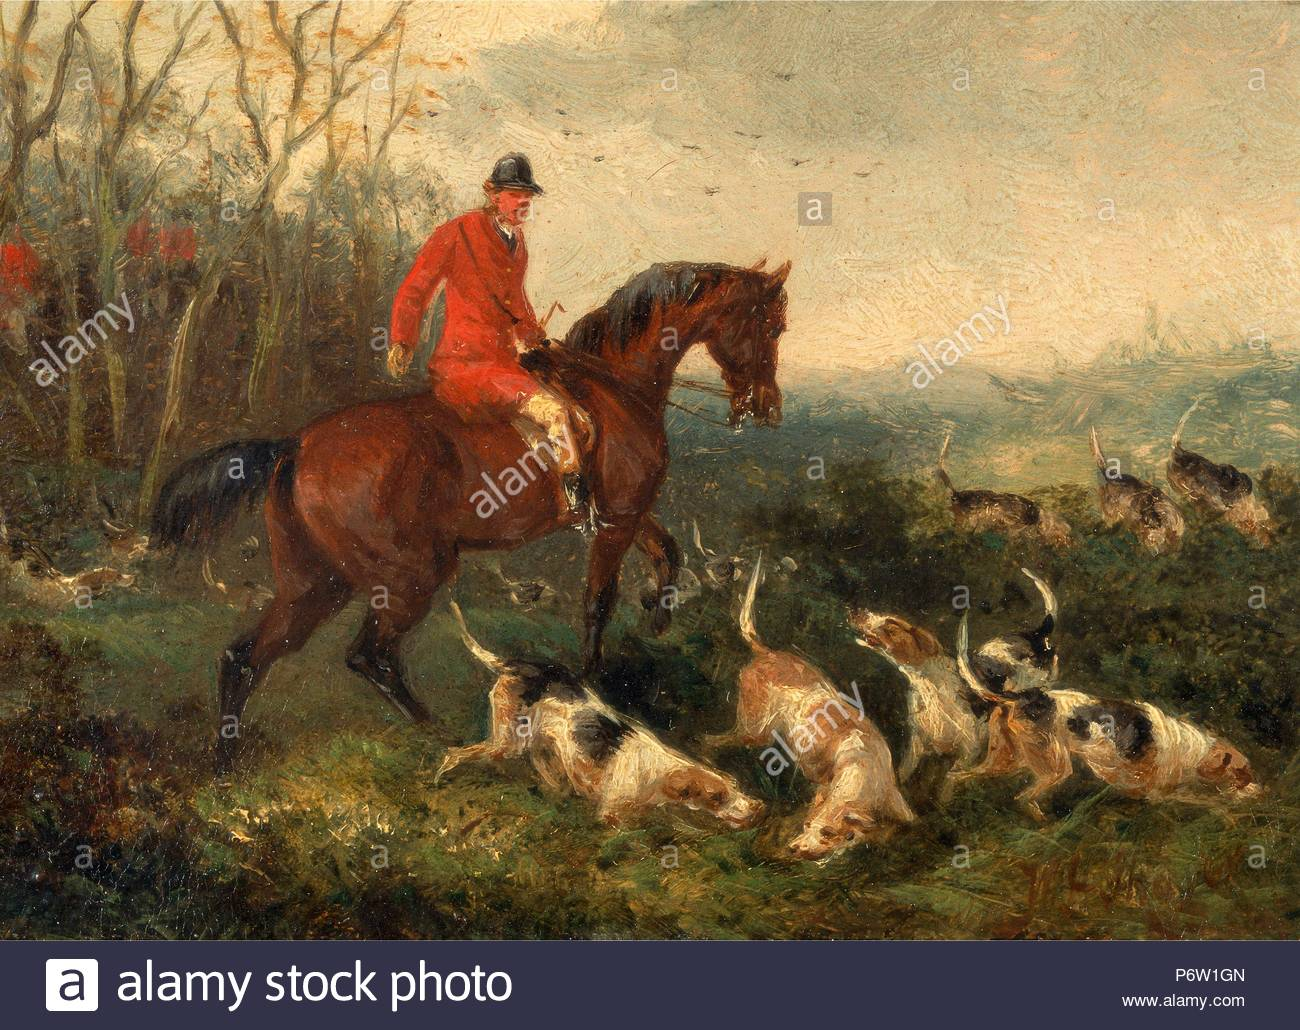 Foxhunting: At Cover Signed and dated in brown paint, lower right: 'WJ Shayer | 6[?]', William J. Shayer, 1811-c.1885, British. - Stock Image